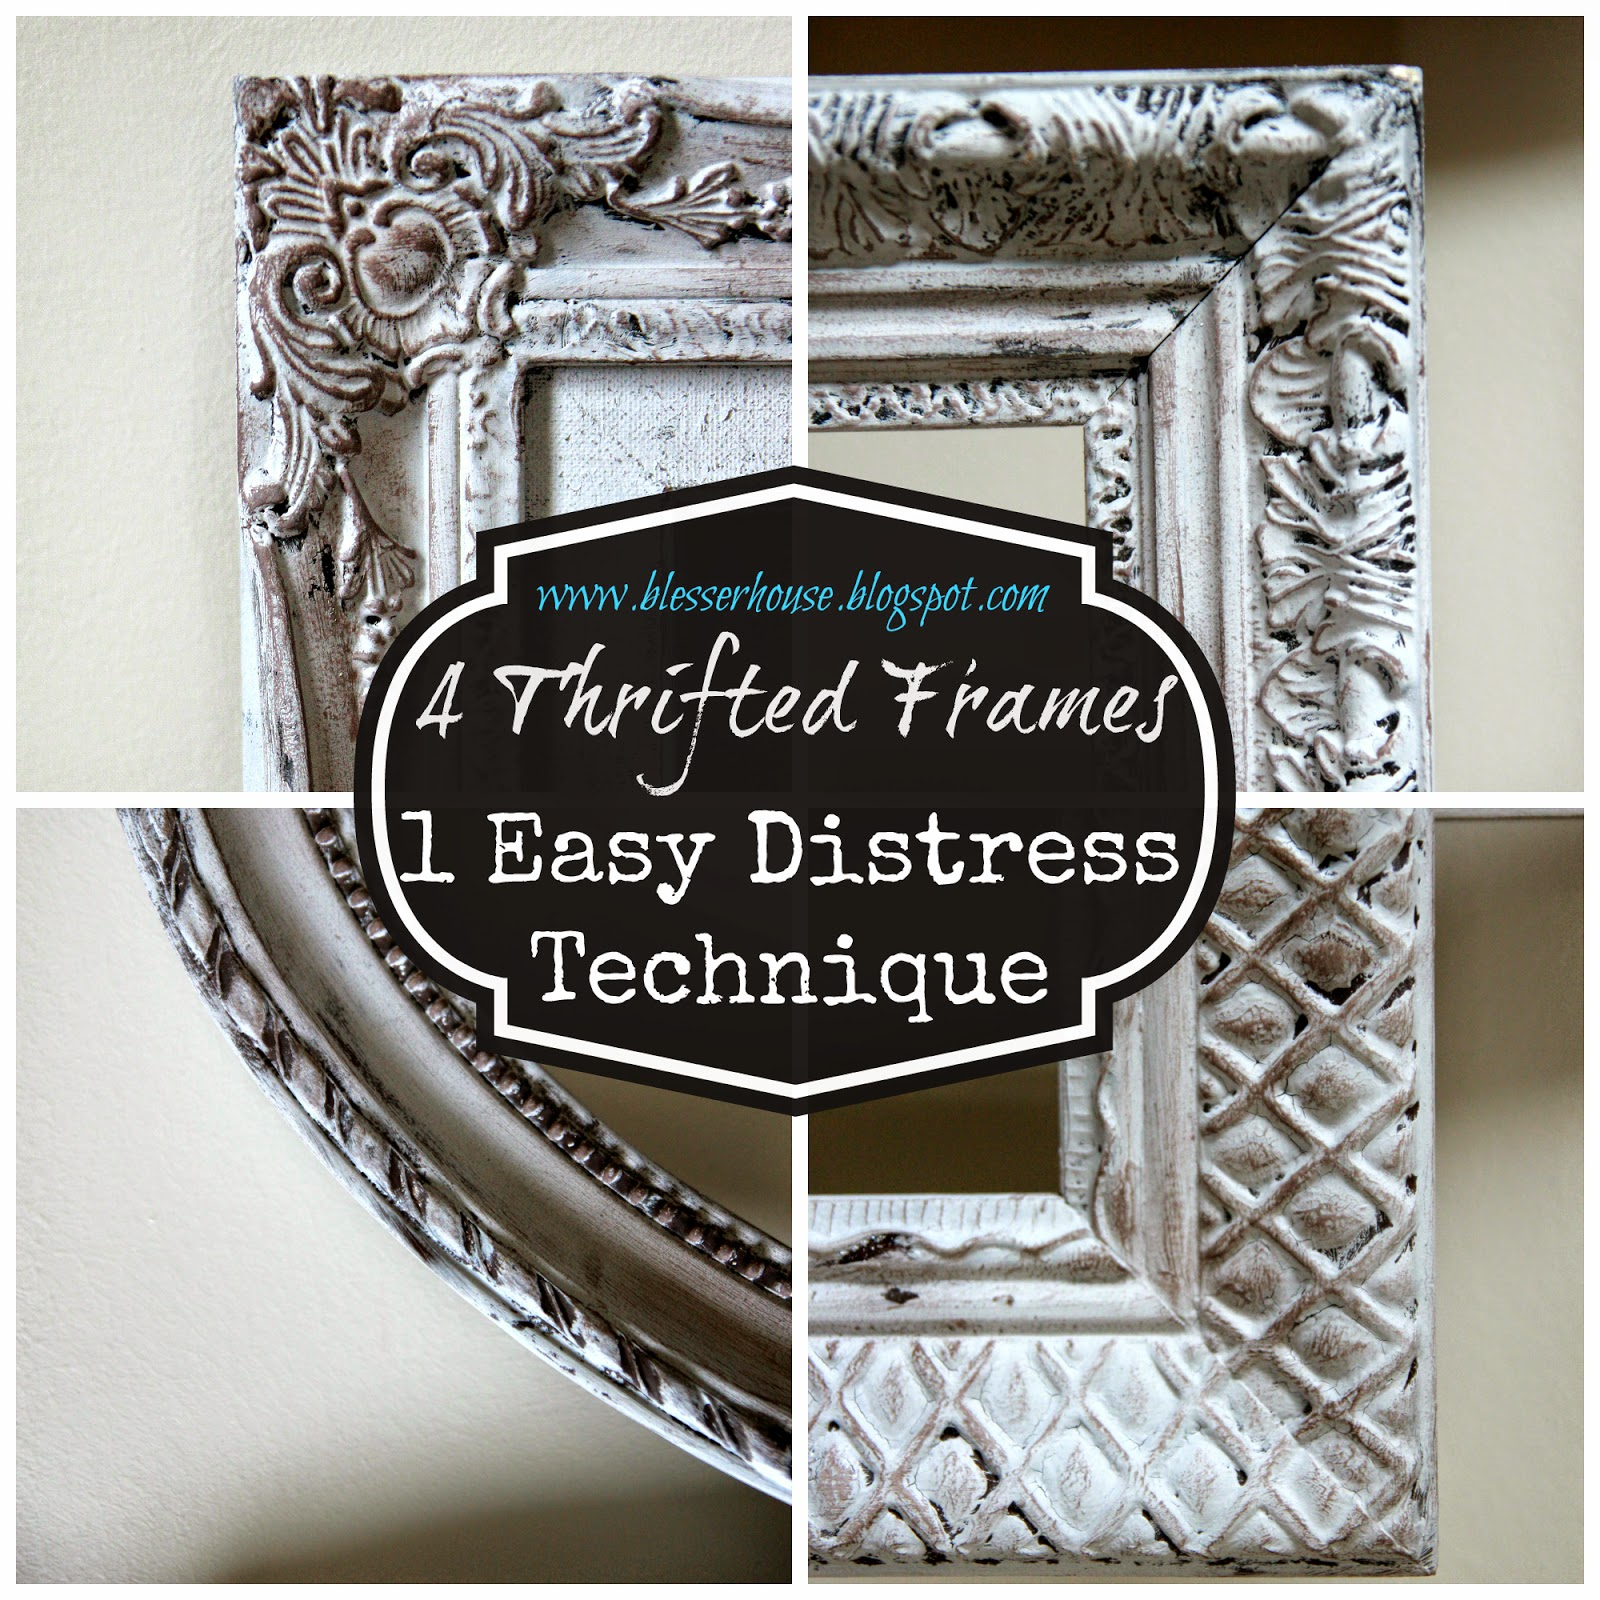 4 Thrifted Frames, 1 Easy Distress Technique - Bless\'er House